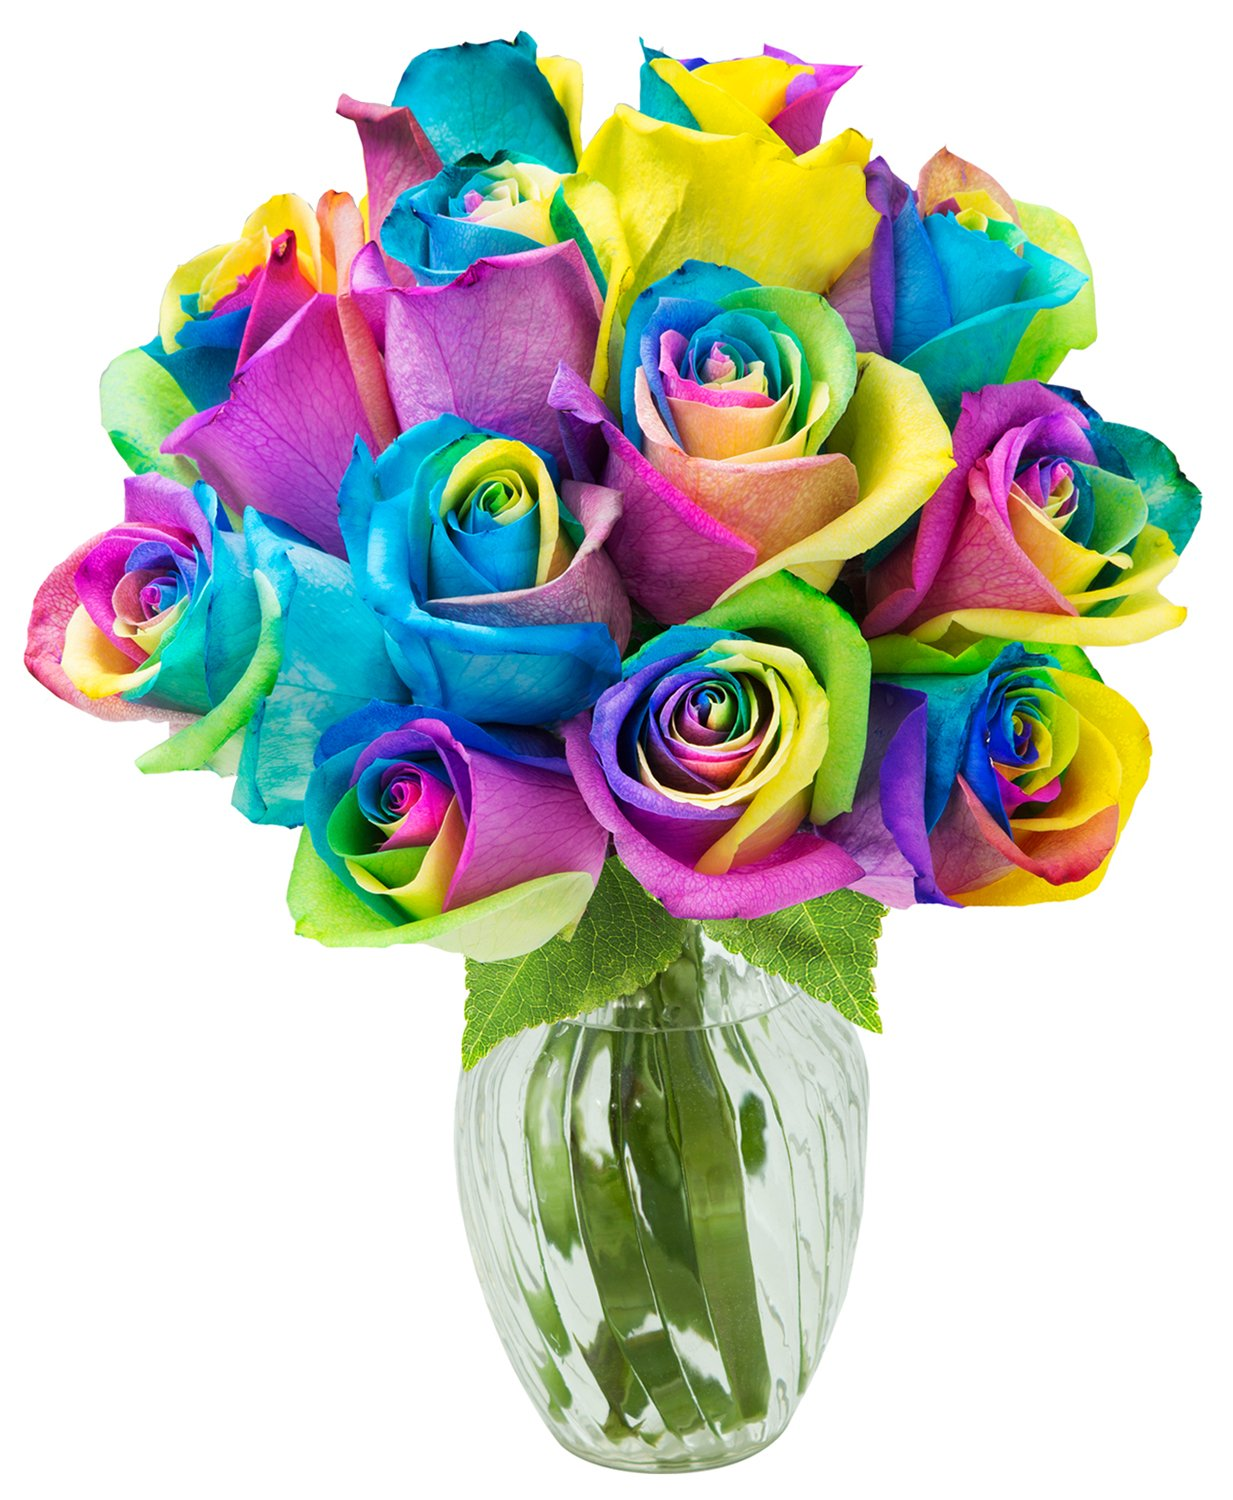 KaBloom Bouquet of 12 Fresh Rainbow Roses (Farm-Fresh, Long-Stem) with Vase